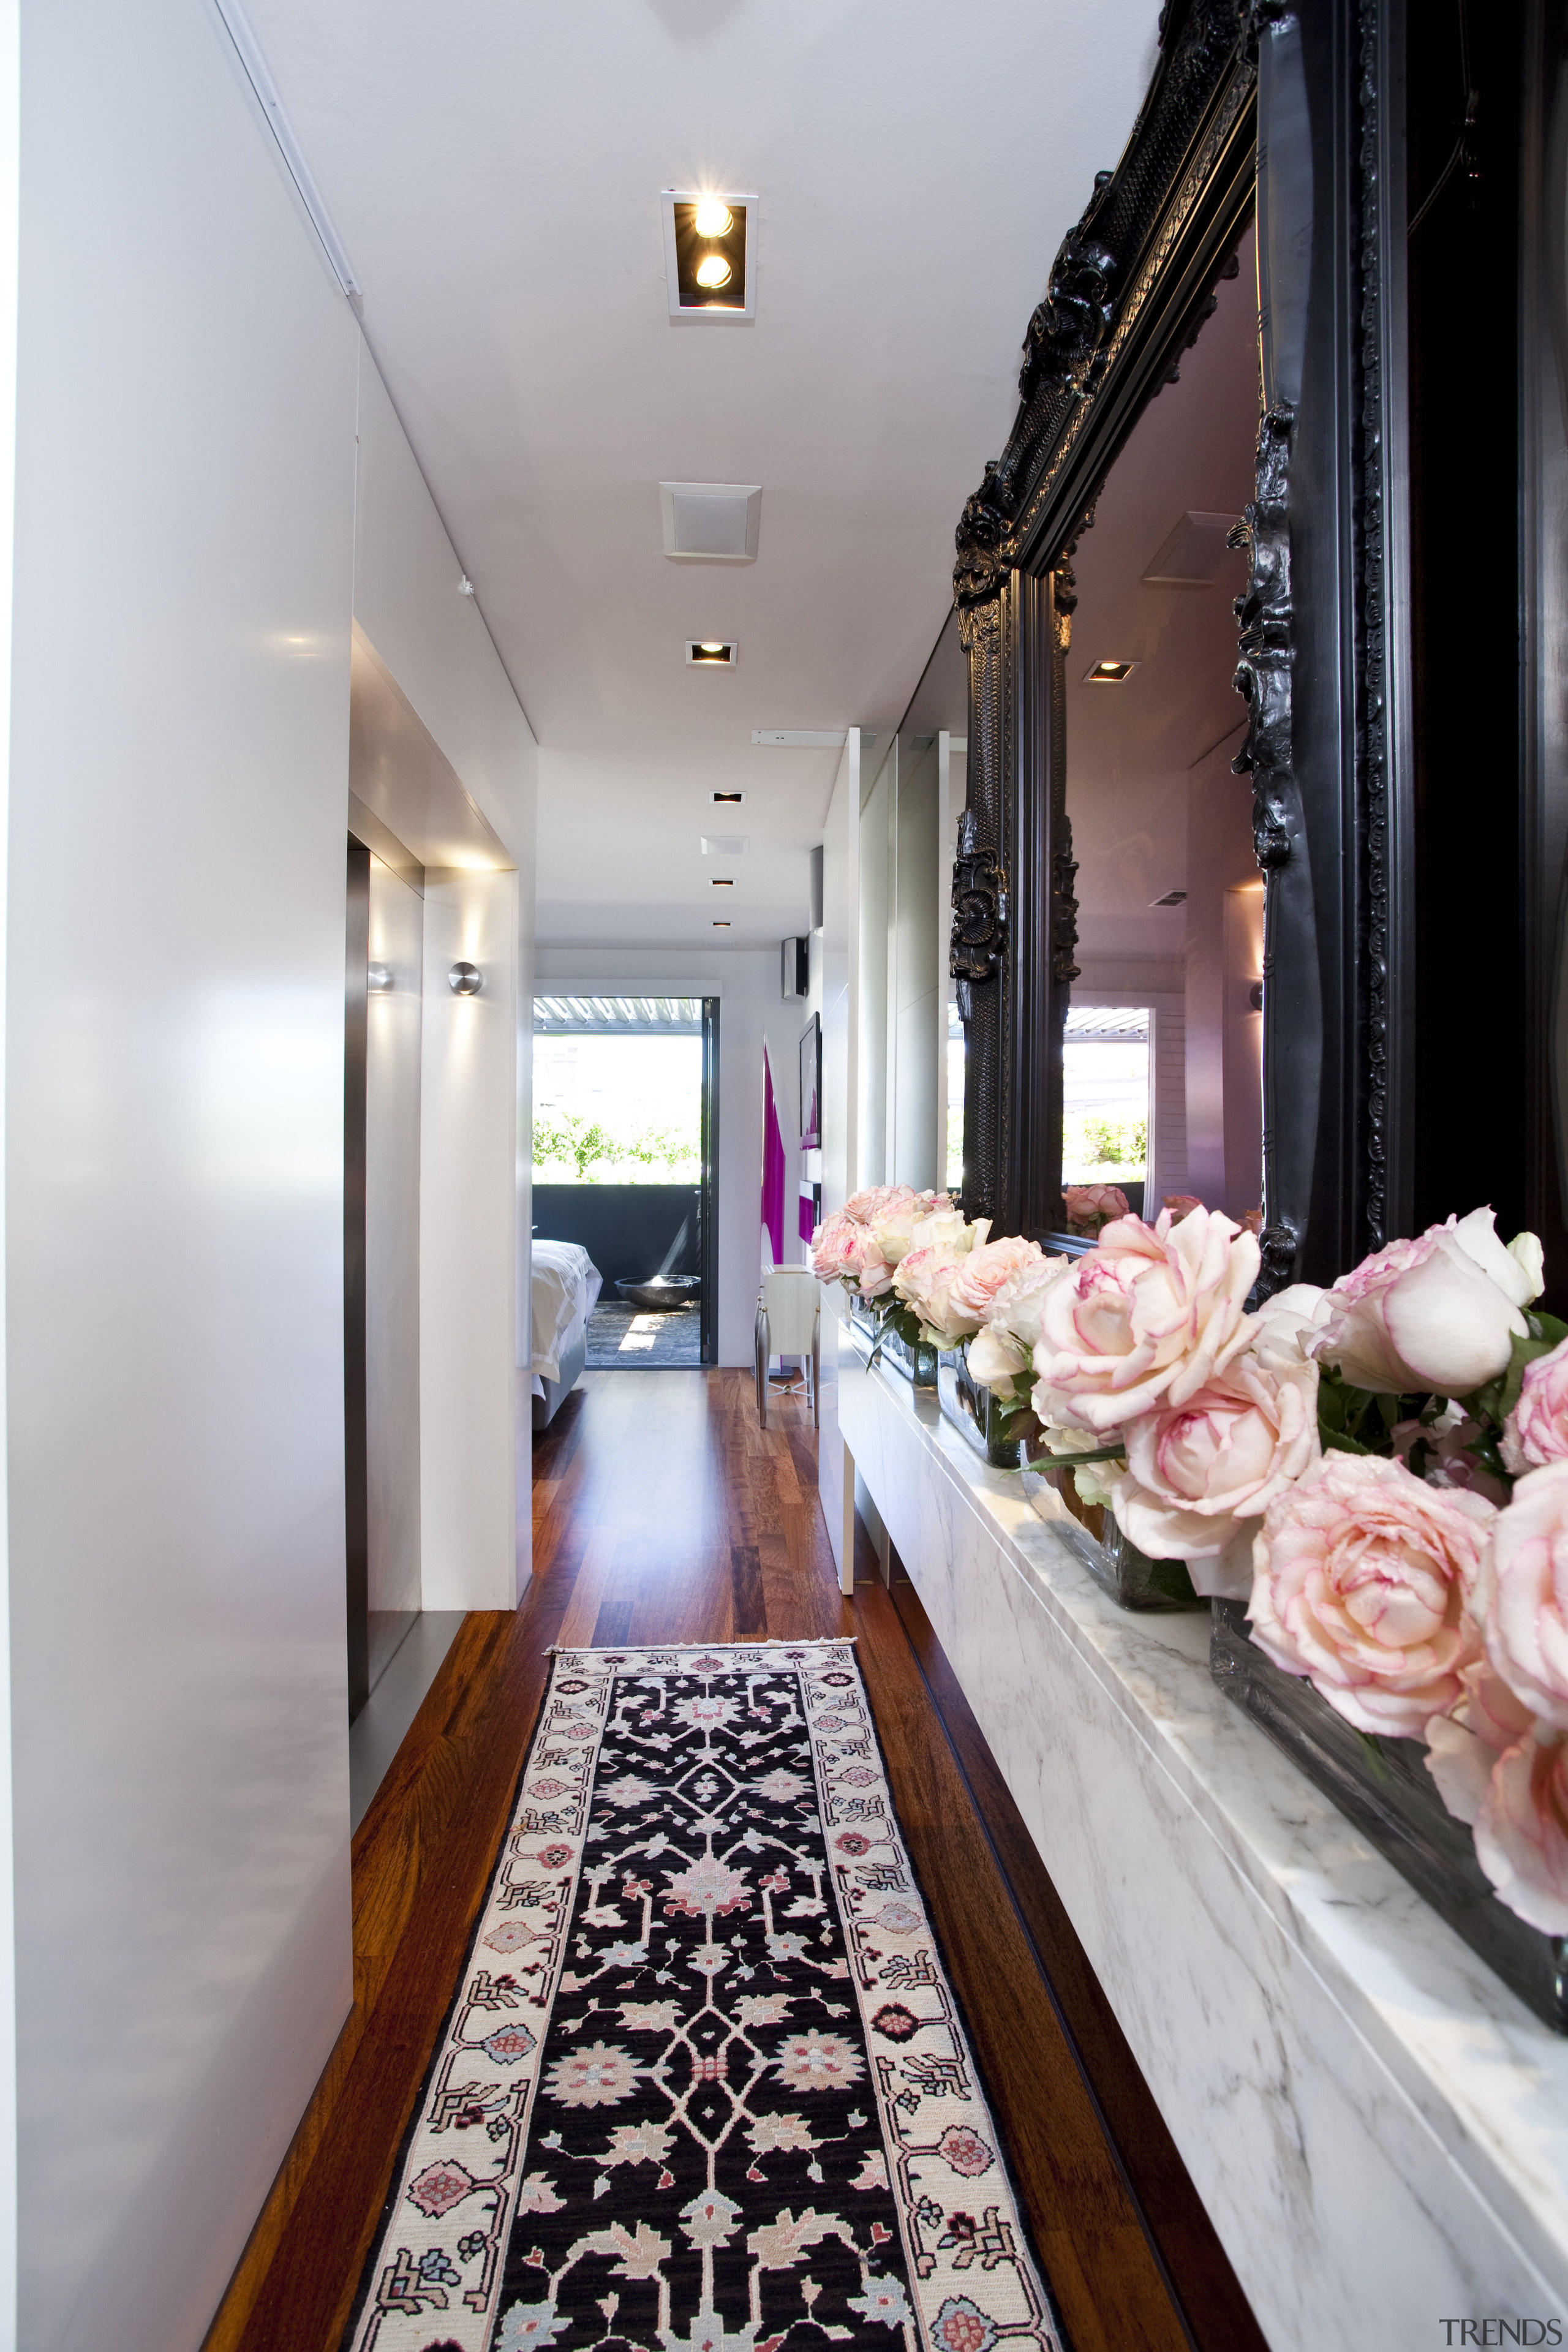 View of hallway with rug and flowers in aisle, ceiling, floor, flooring, interior design, room, gray